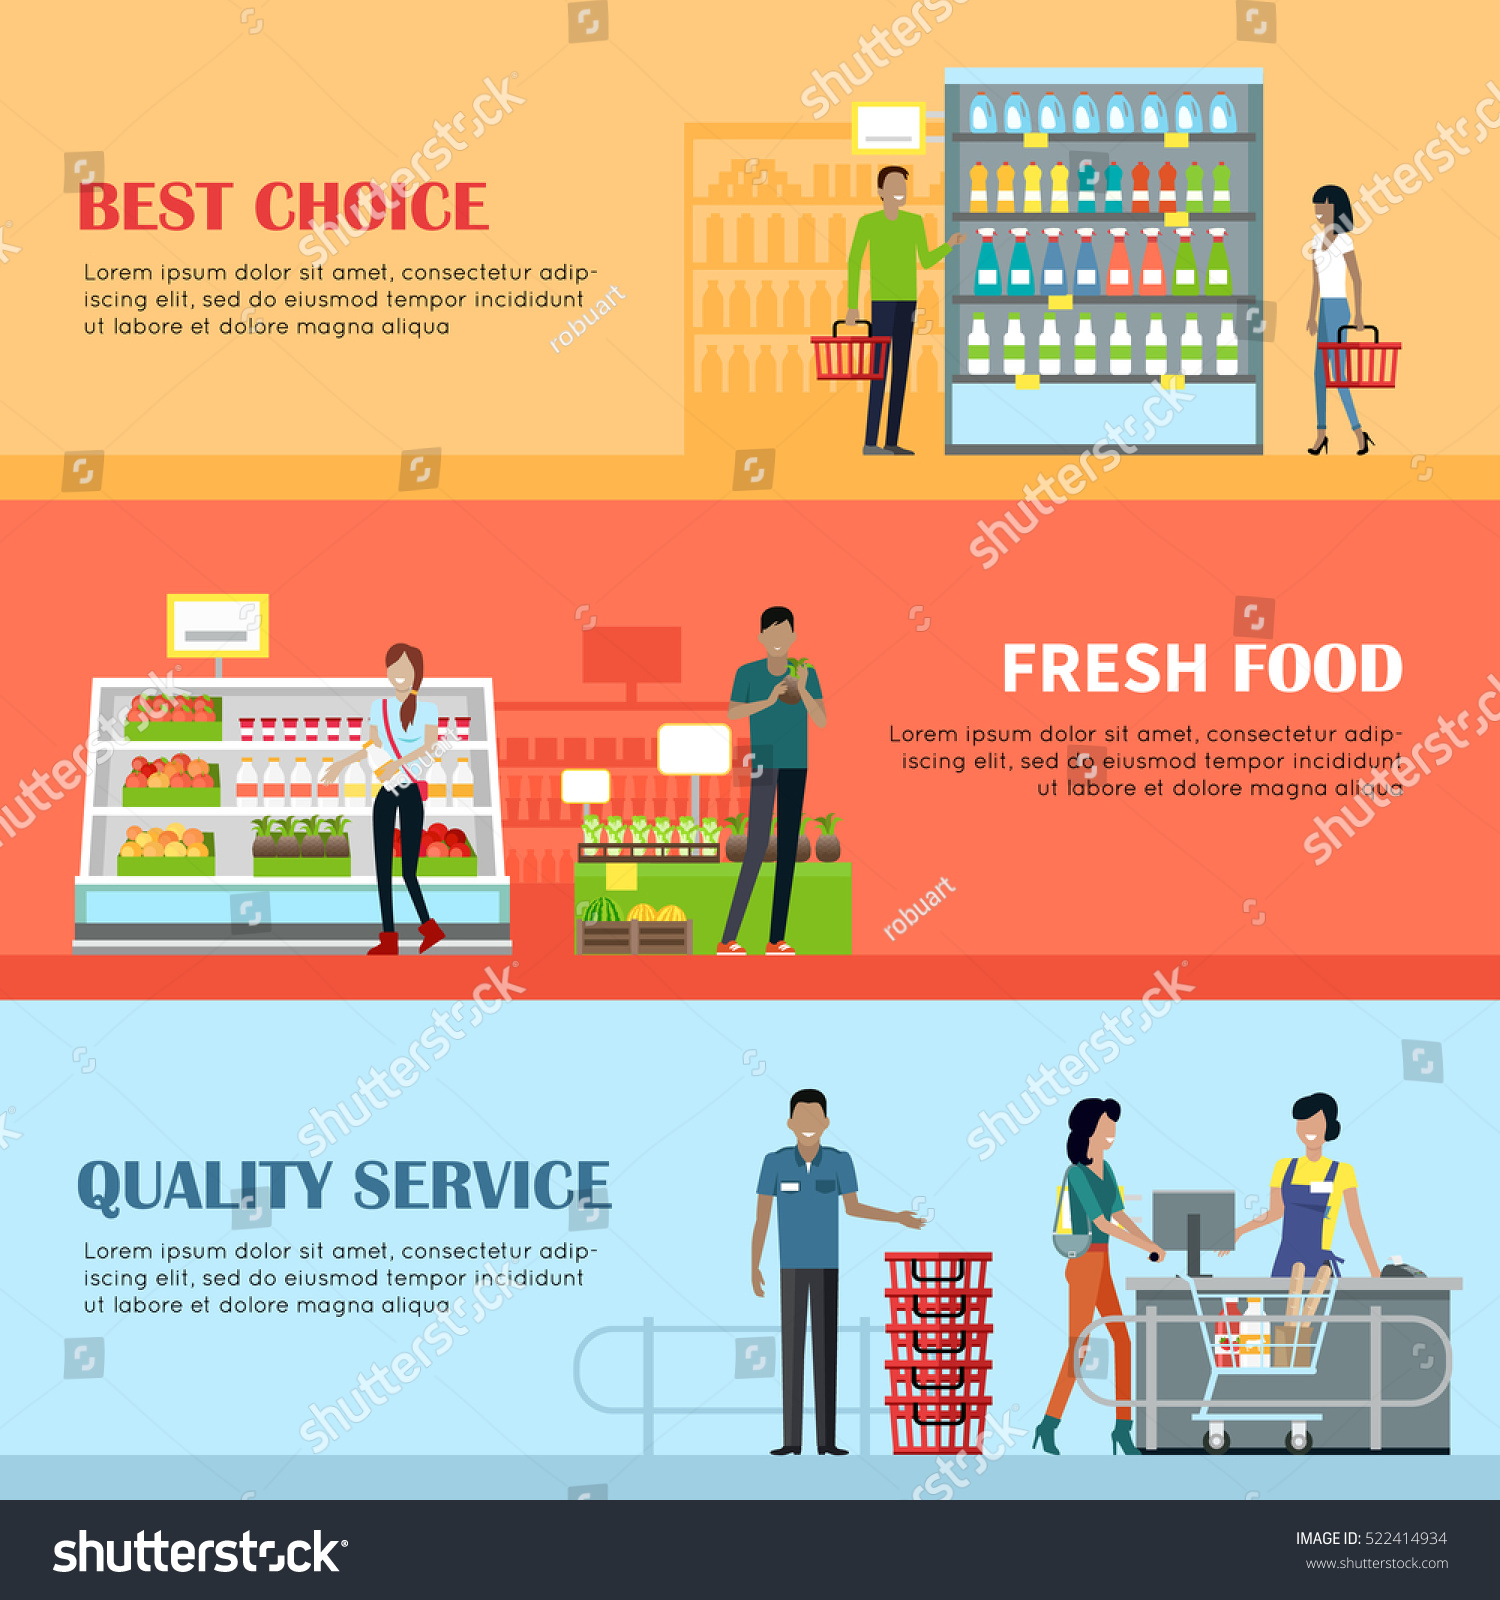 People In Supermarket Interior Design Best Choice Fresh Food Quality Service